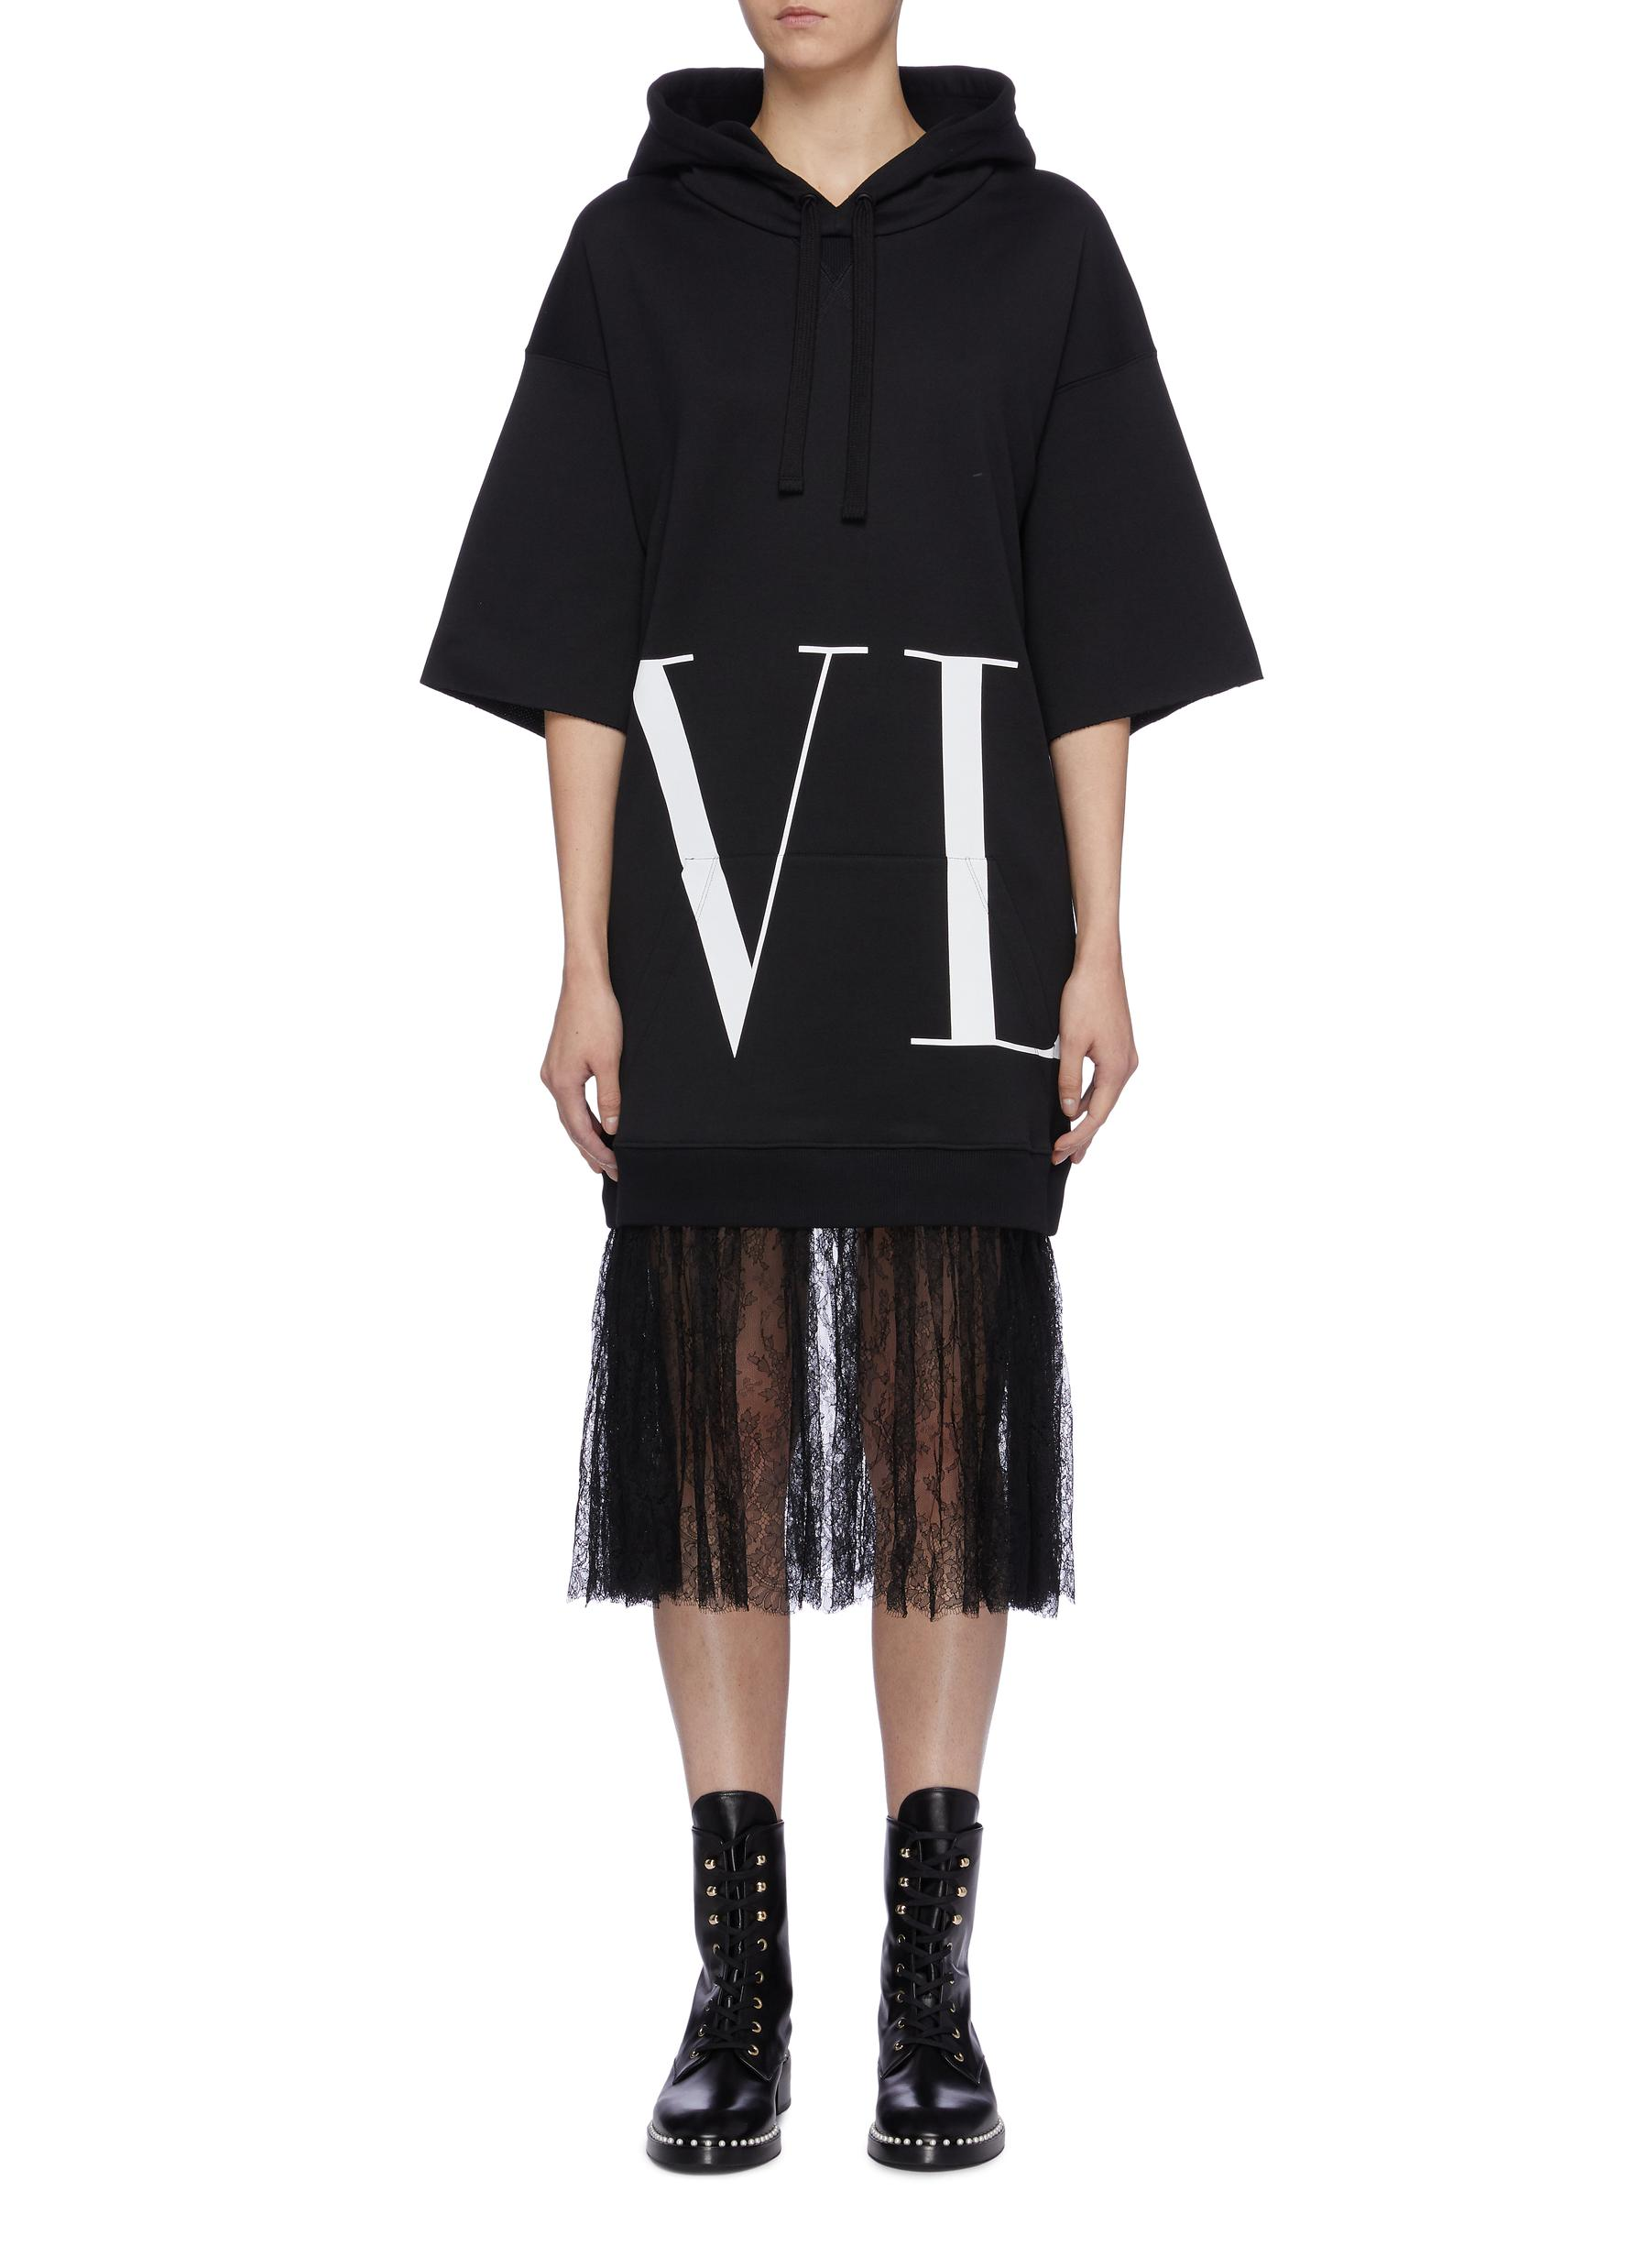 VLTN print lace edge hoodie dress by Valentino